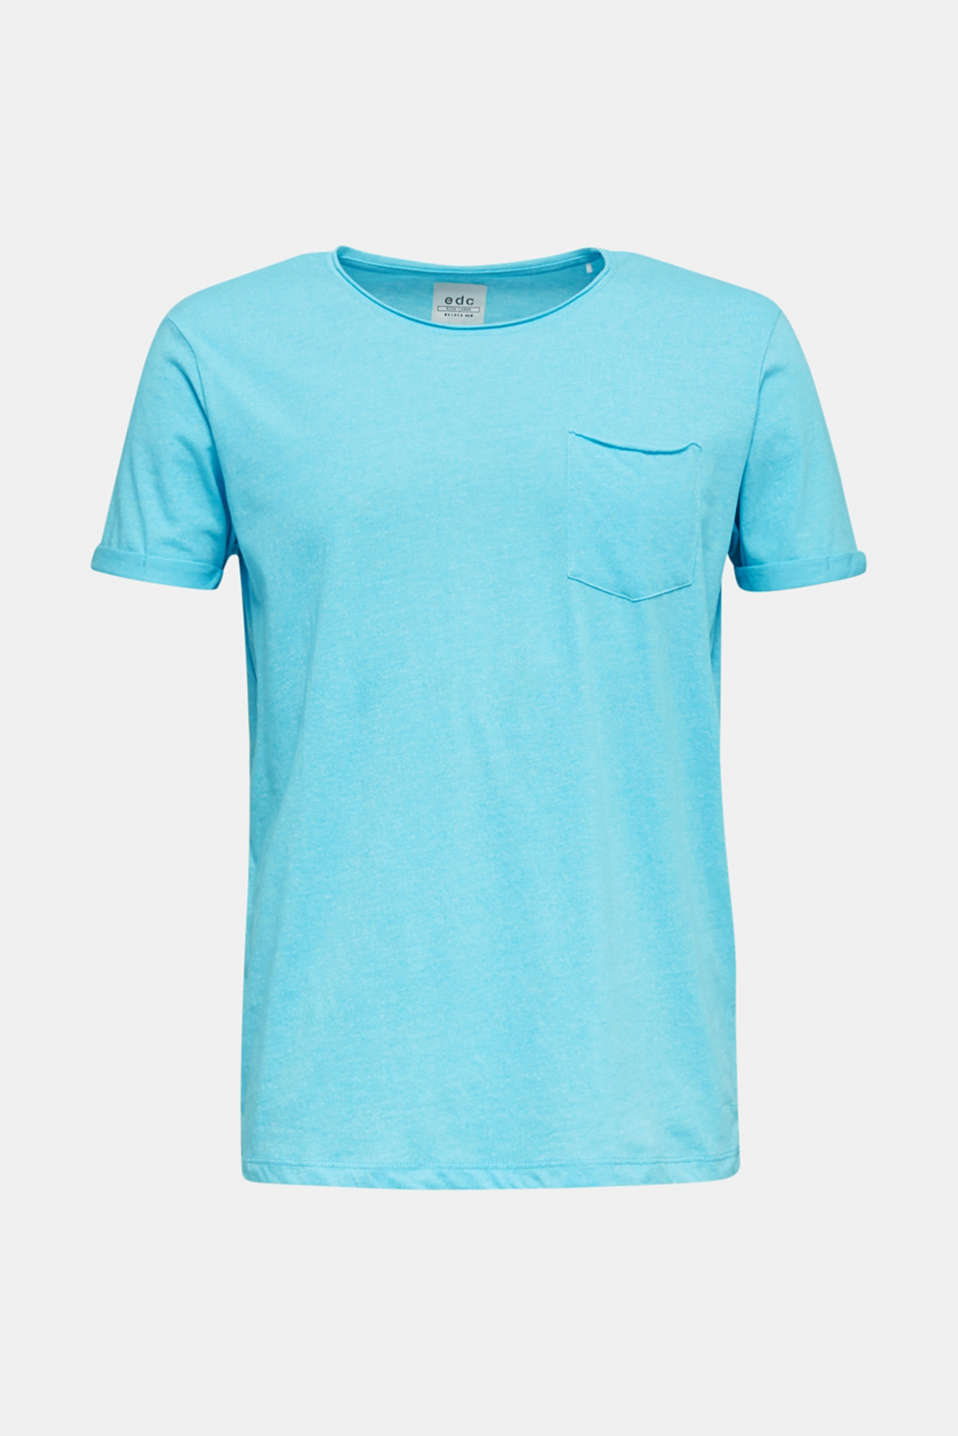 Jersey T-shirt in a casual look, LIGHT BLUE, detail image number 7